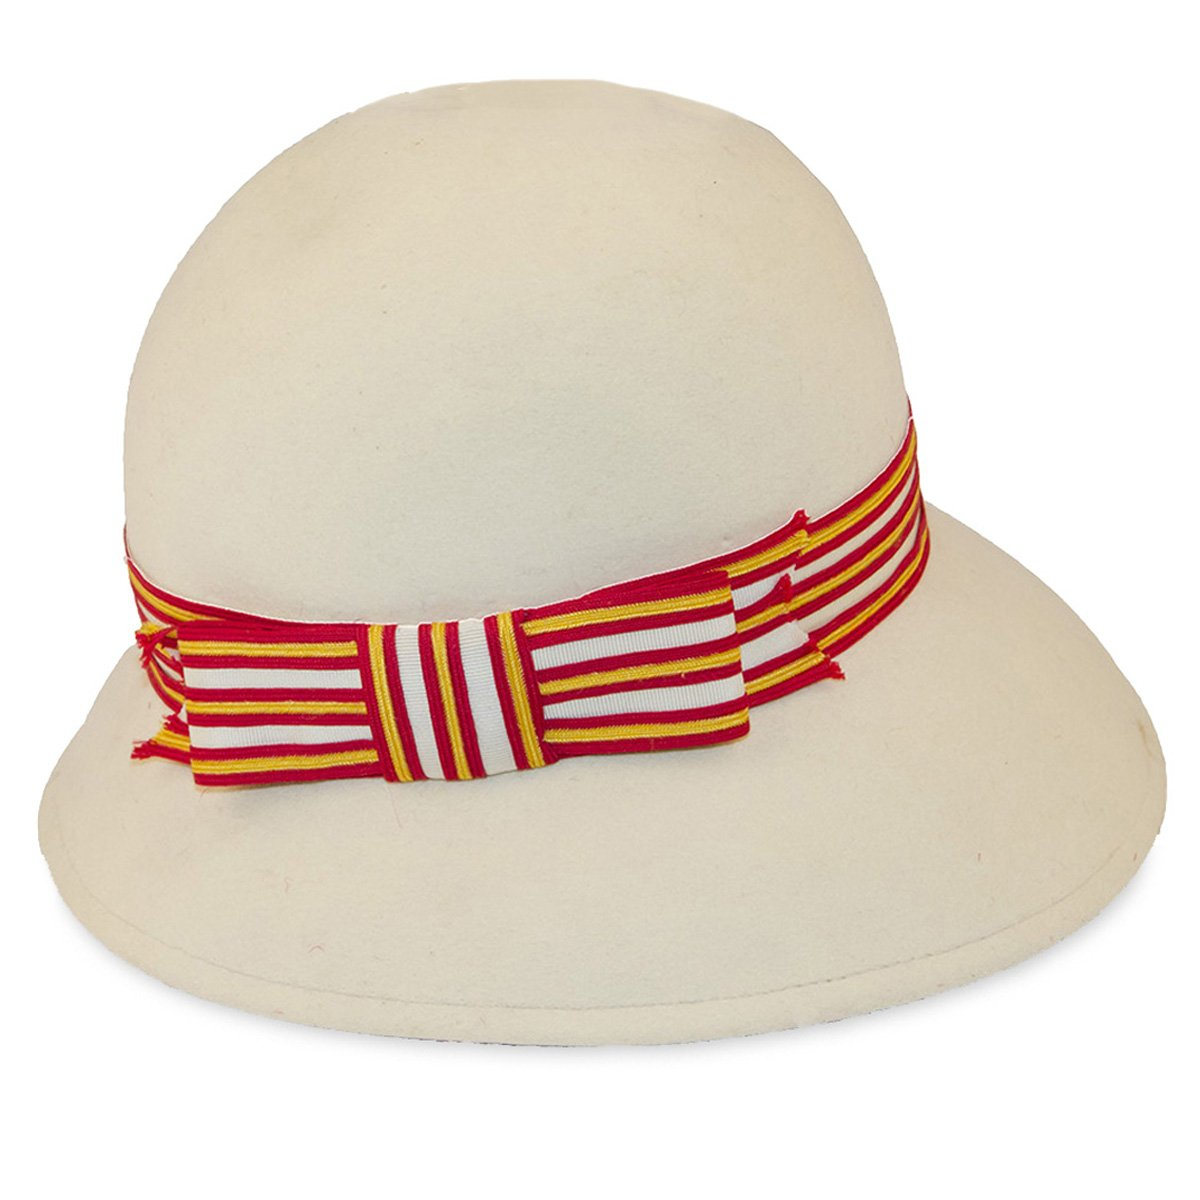 Vintage 1970s Cloche Hat, Mr John, Red & Orange Stripe, Hat Size 21